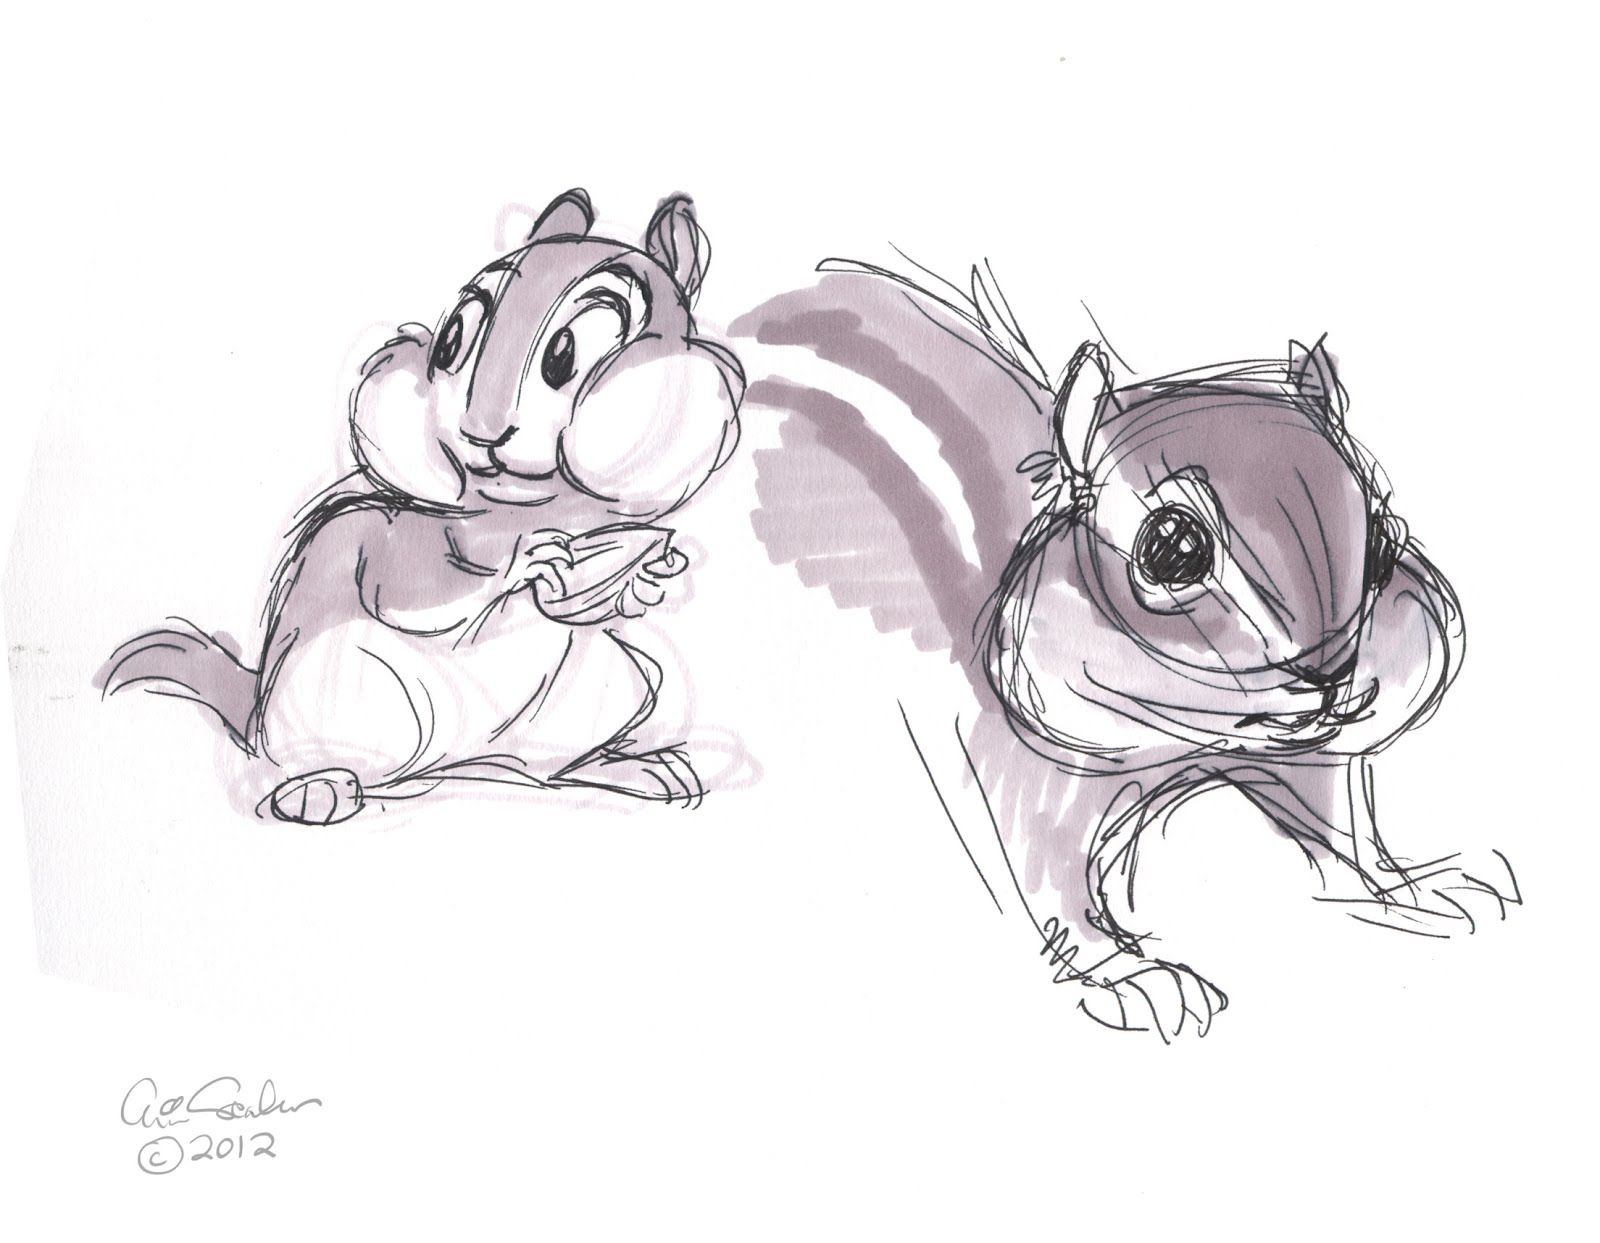 Cute Chipmunk I Might Get A Tattoo Of This Little Guymy Gpa Called Me